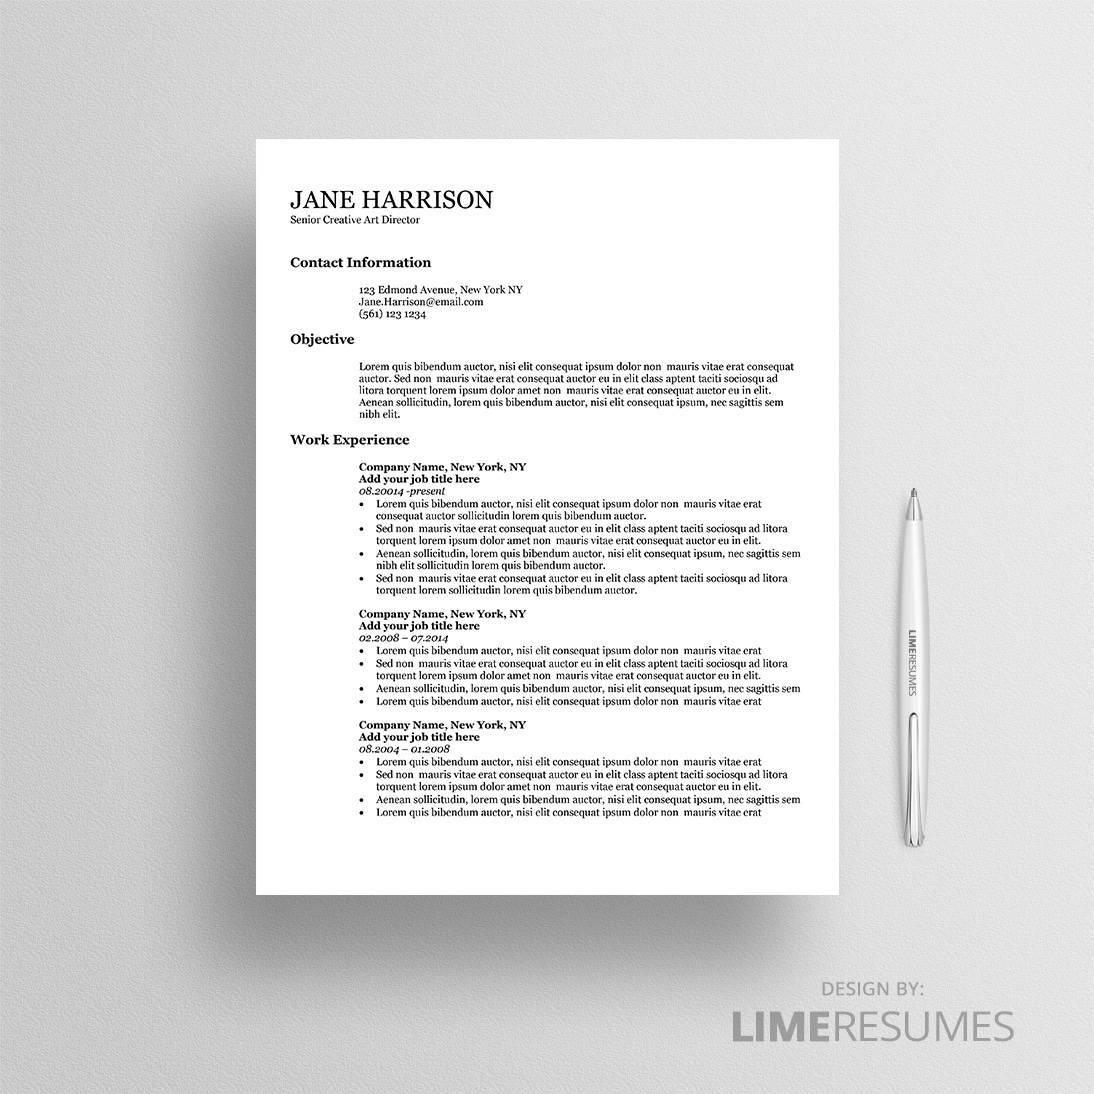 resume templates optimized